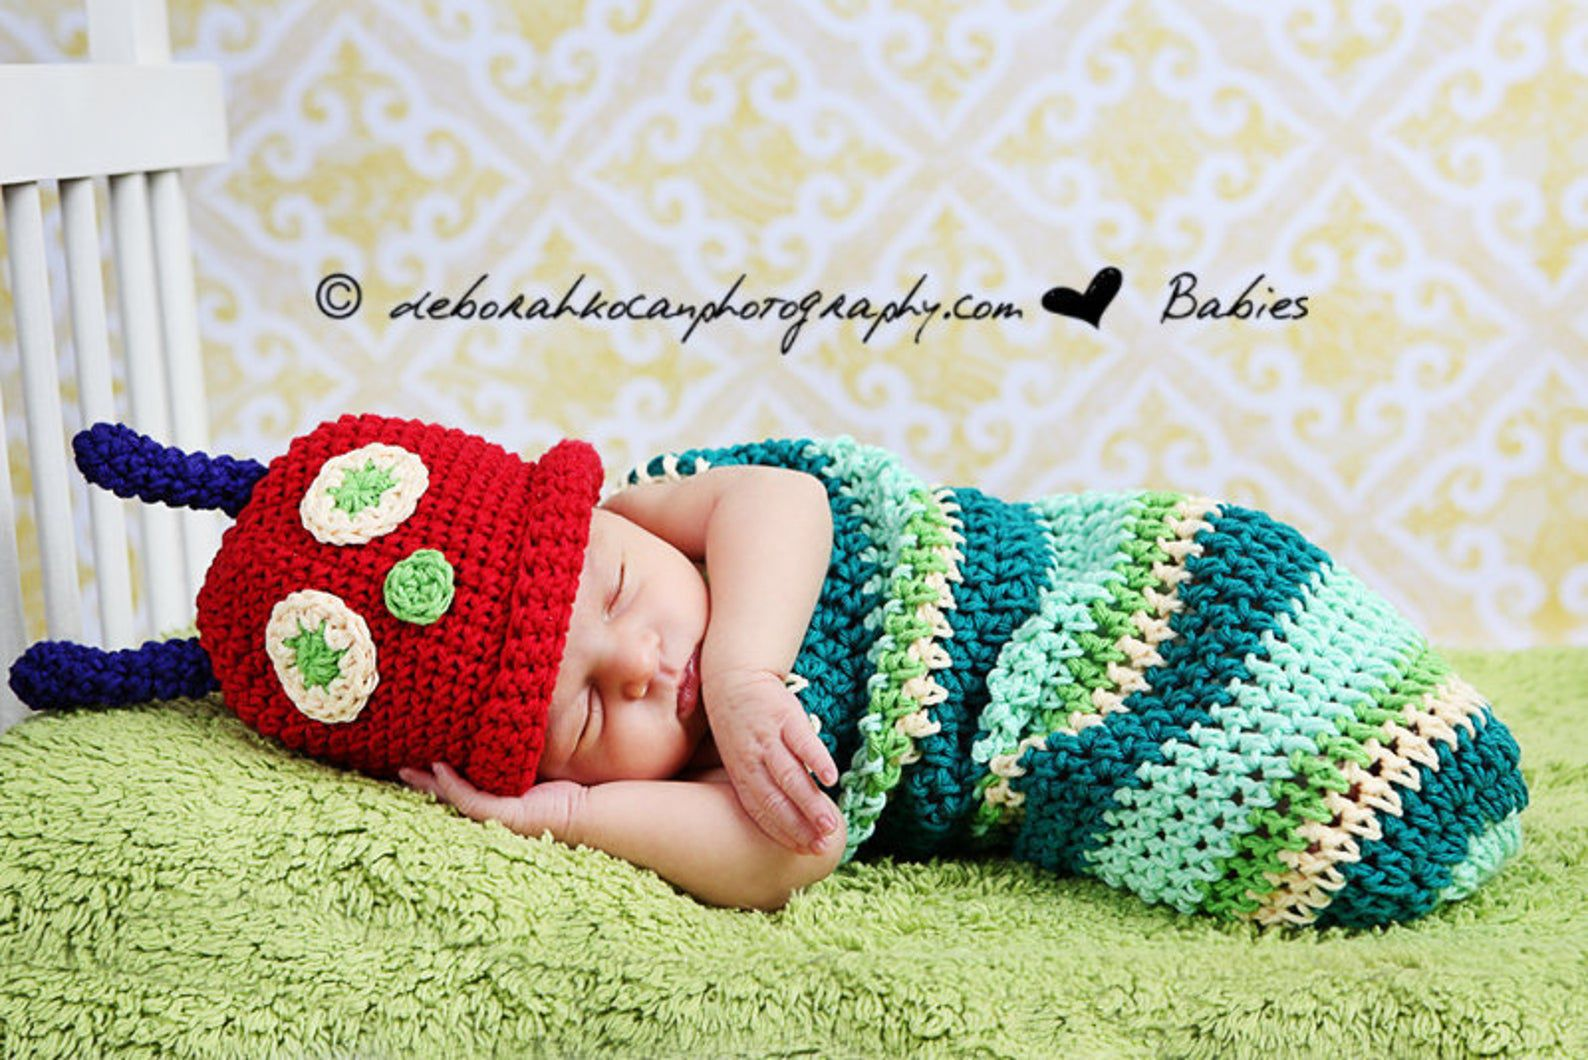 Image of the very hungry caterpillar costume.